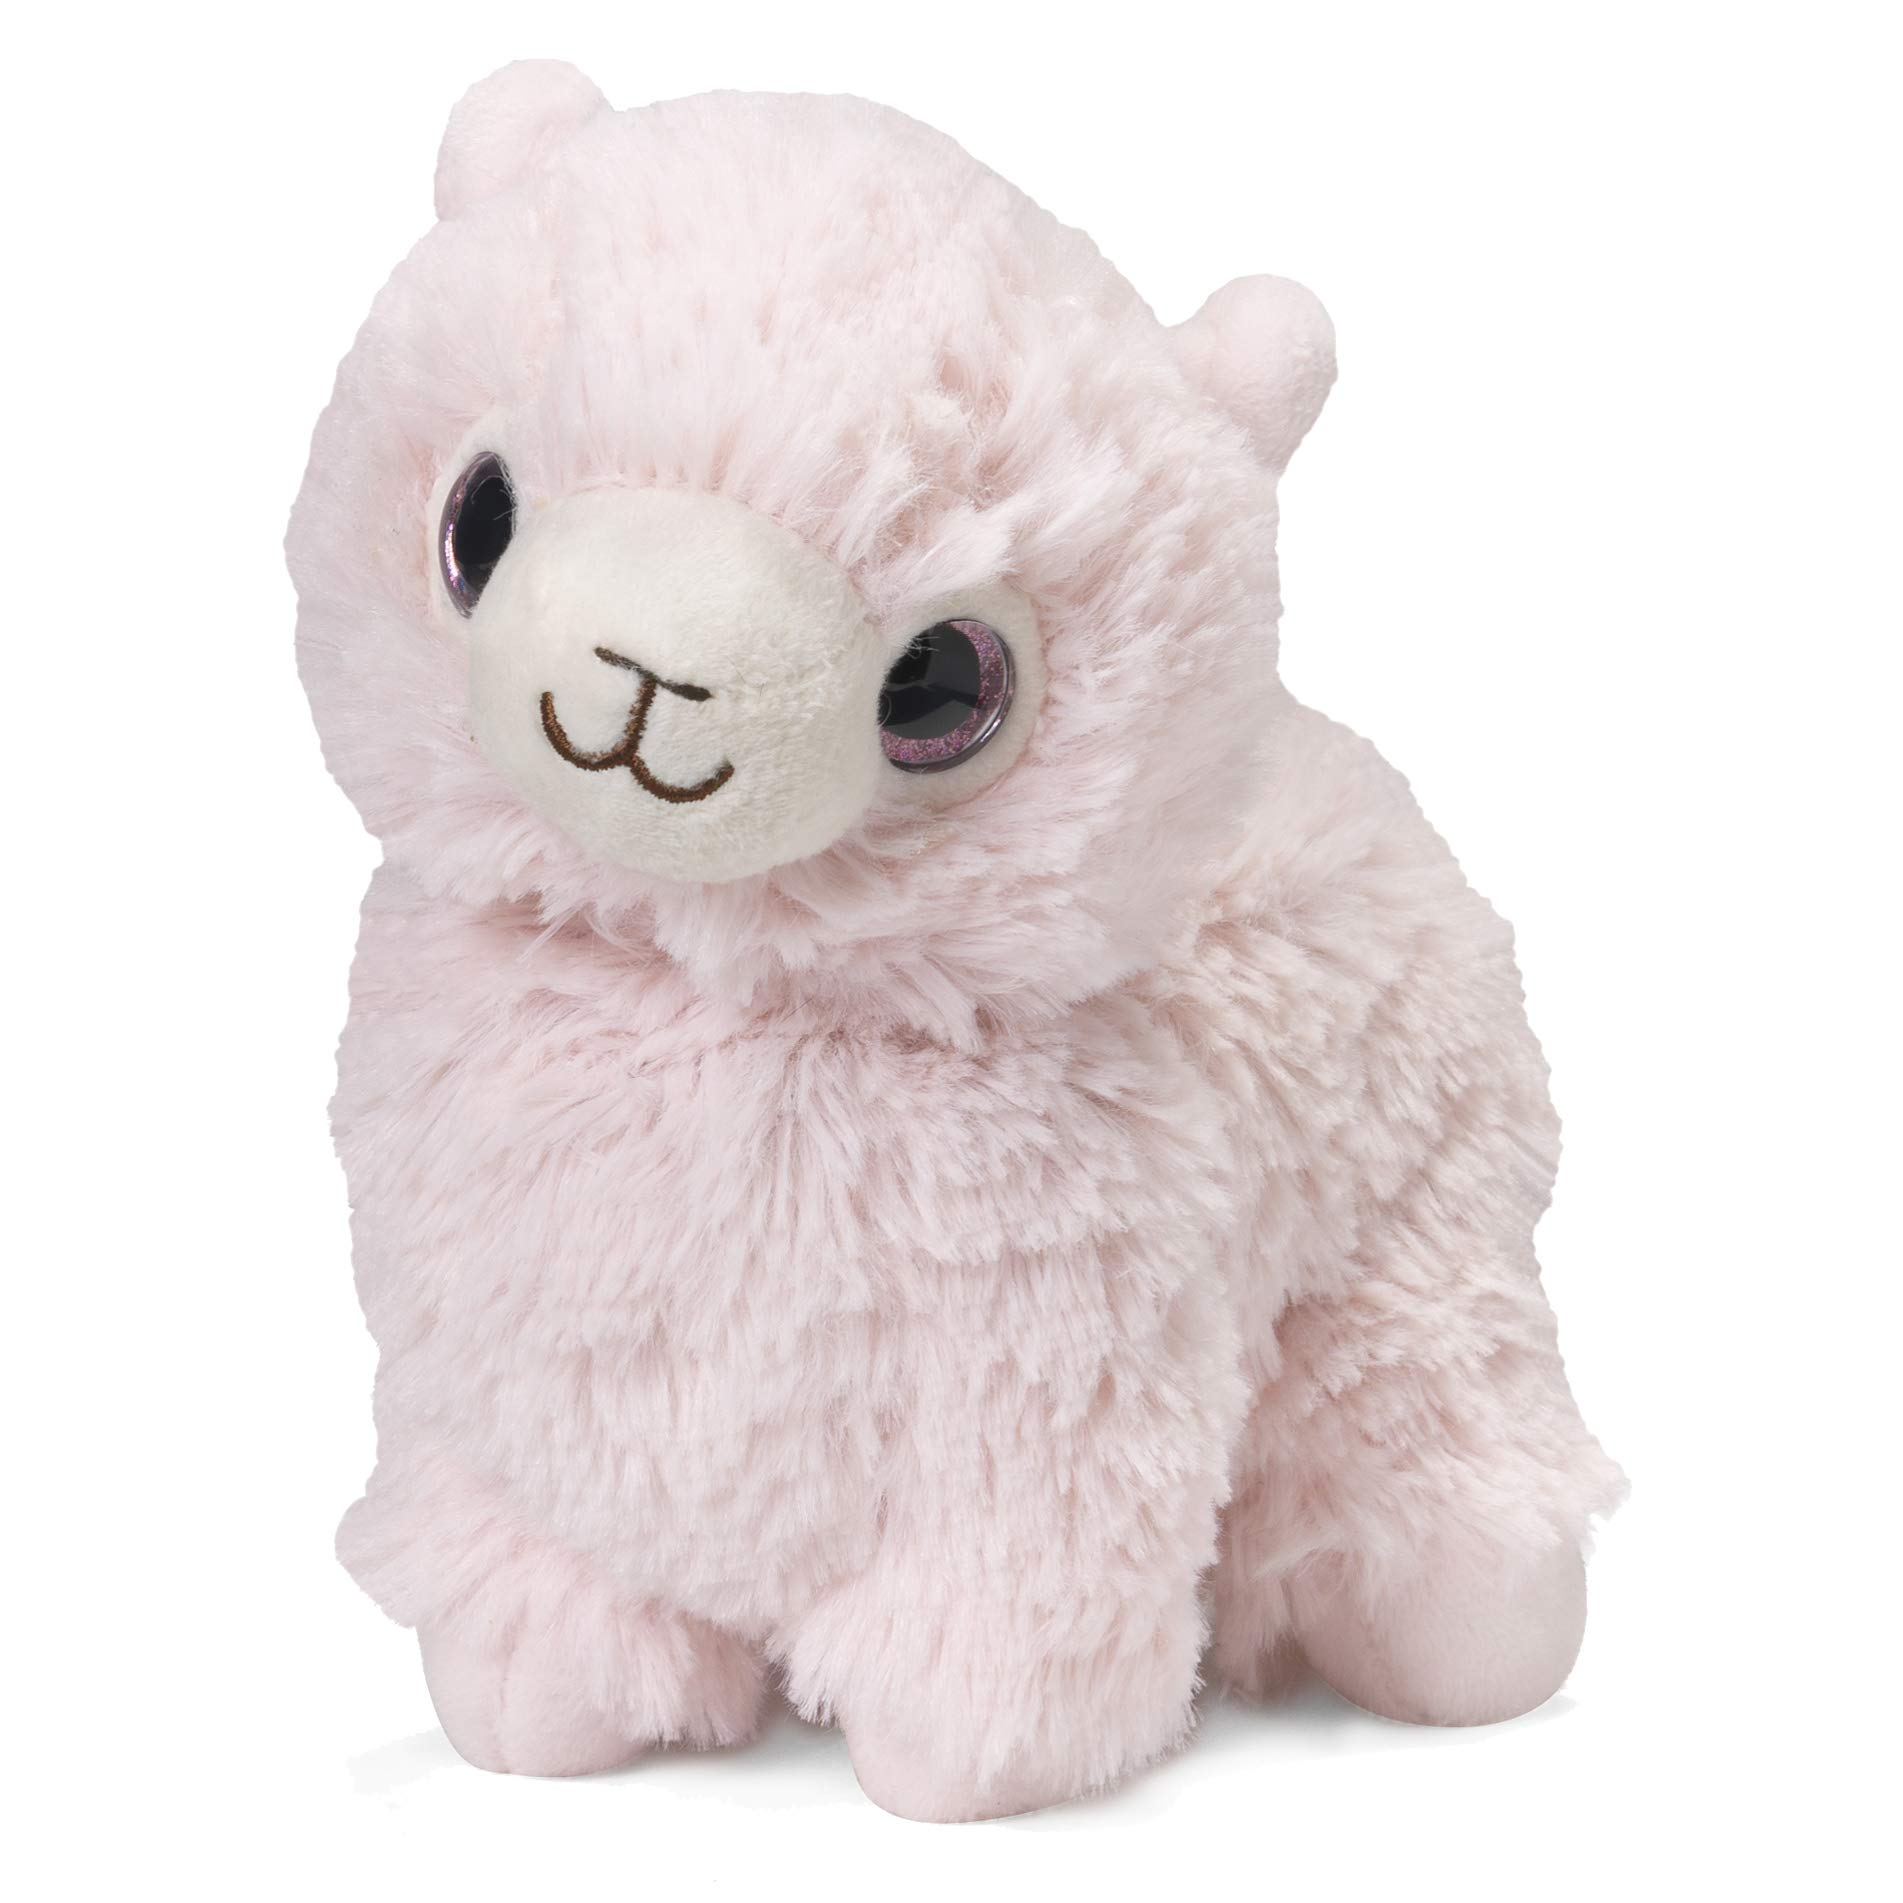 Warmies Microwavable French Lavender Scented Plush Jr Puppy